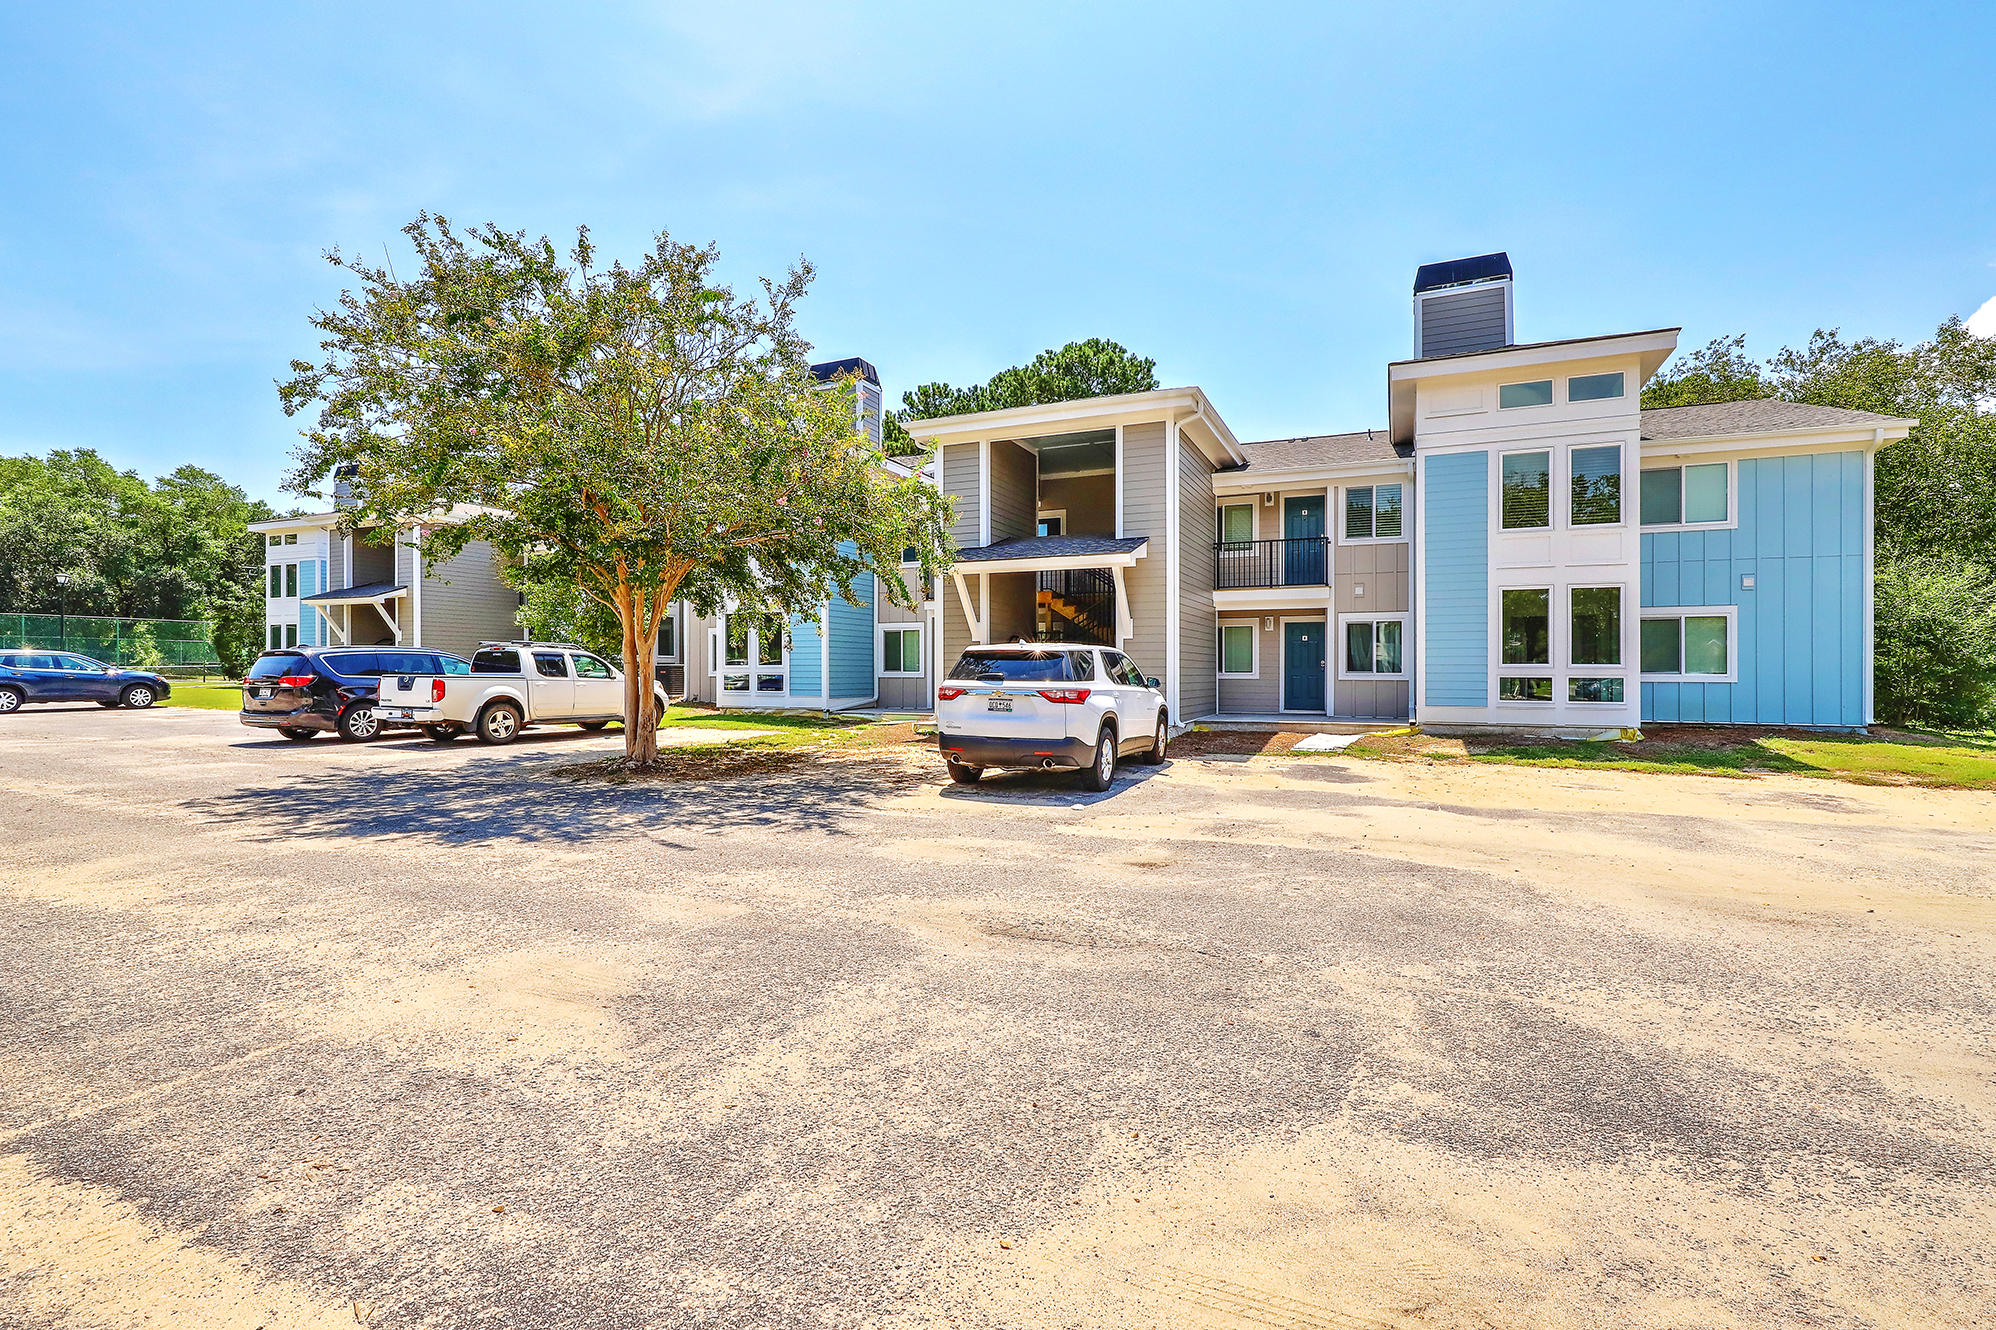 East Bridge Town Lofts Homes For Sale - 268 Alexandra, Mount Pleasant, SC - 0